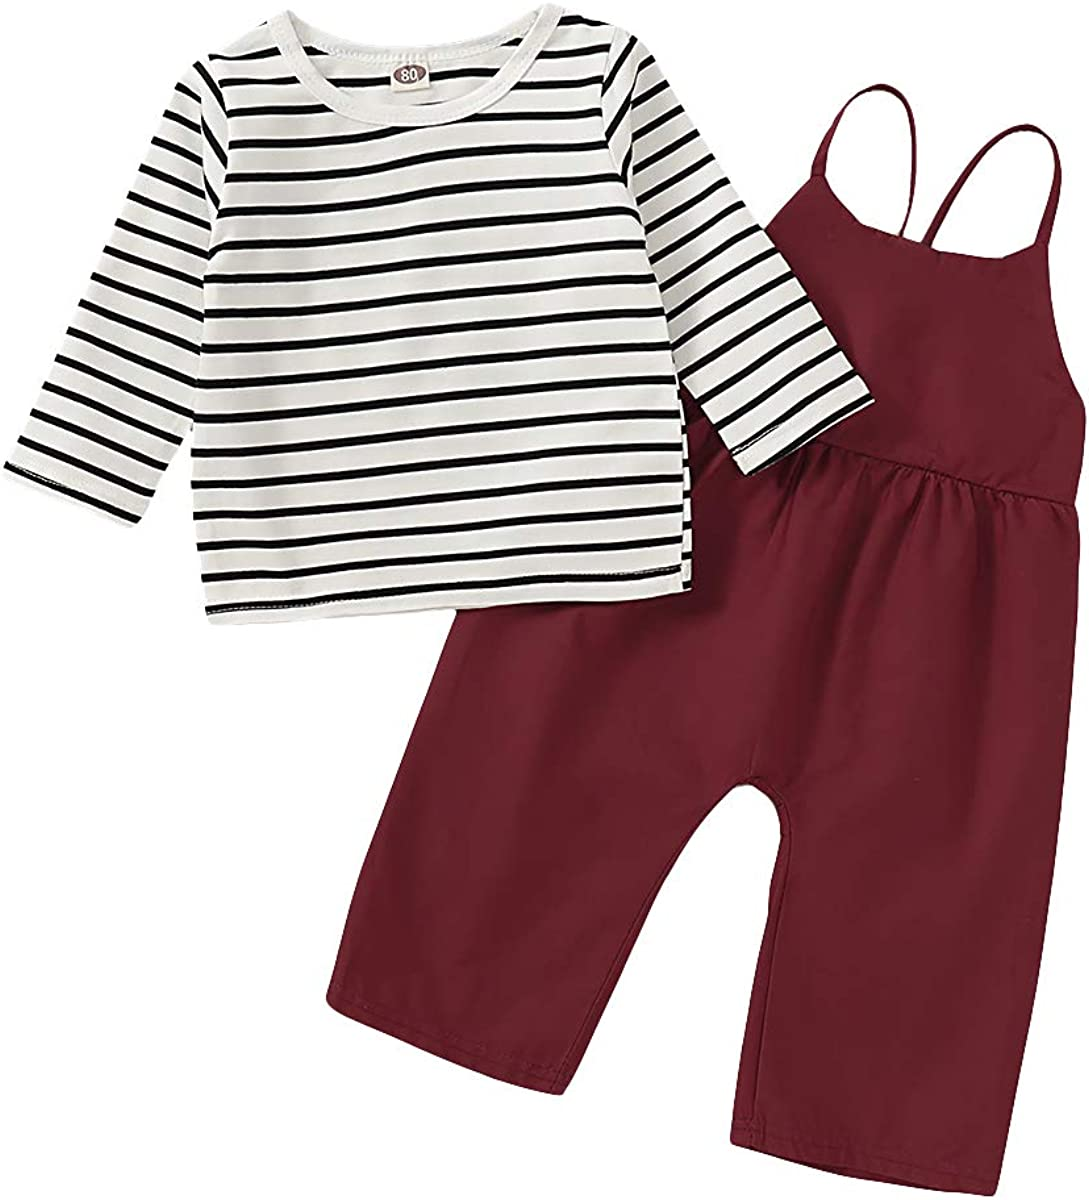 Toddler Baby Girls Outfit Sets Stripe Long Sleeve T-Shirt + Strap Overalls Loose Jumpsuit Kids Fall Springtime Clothes